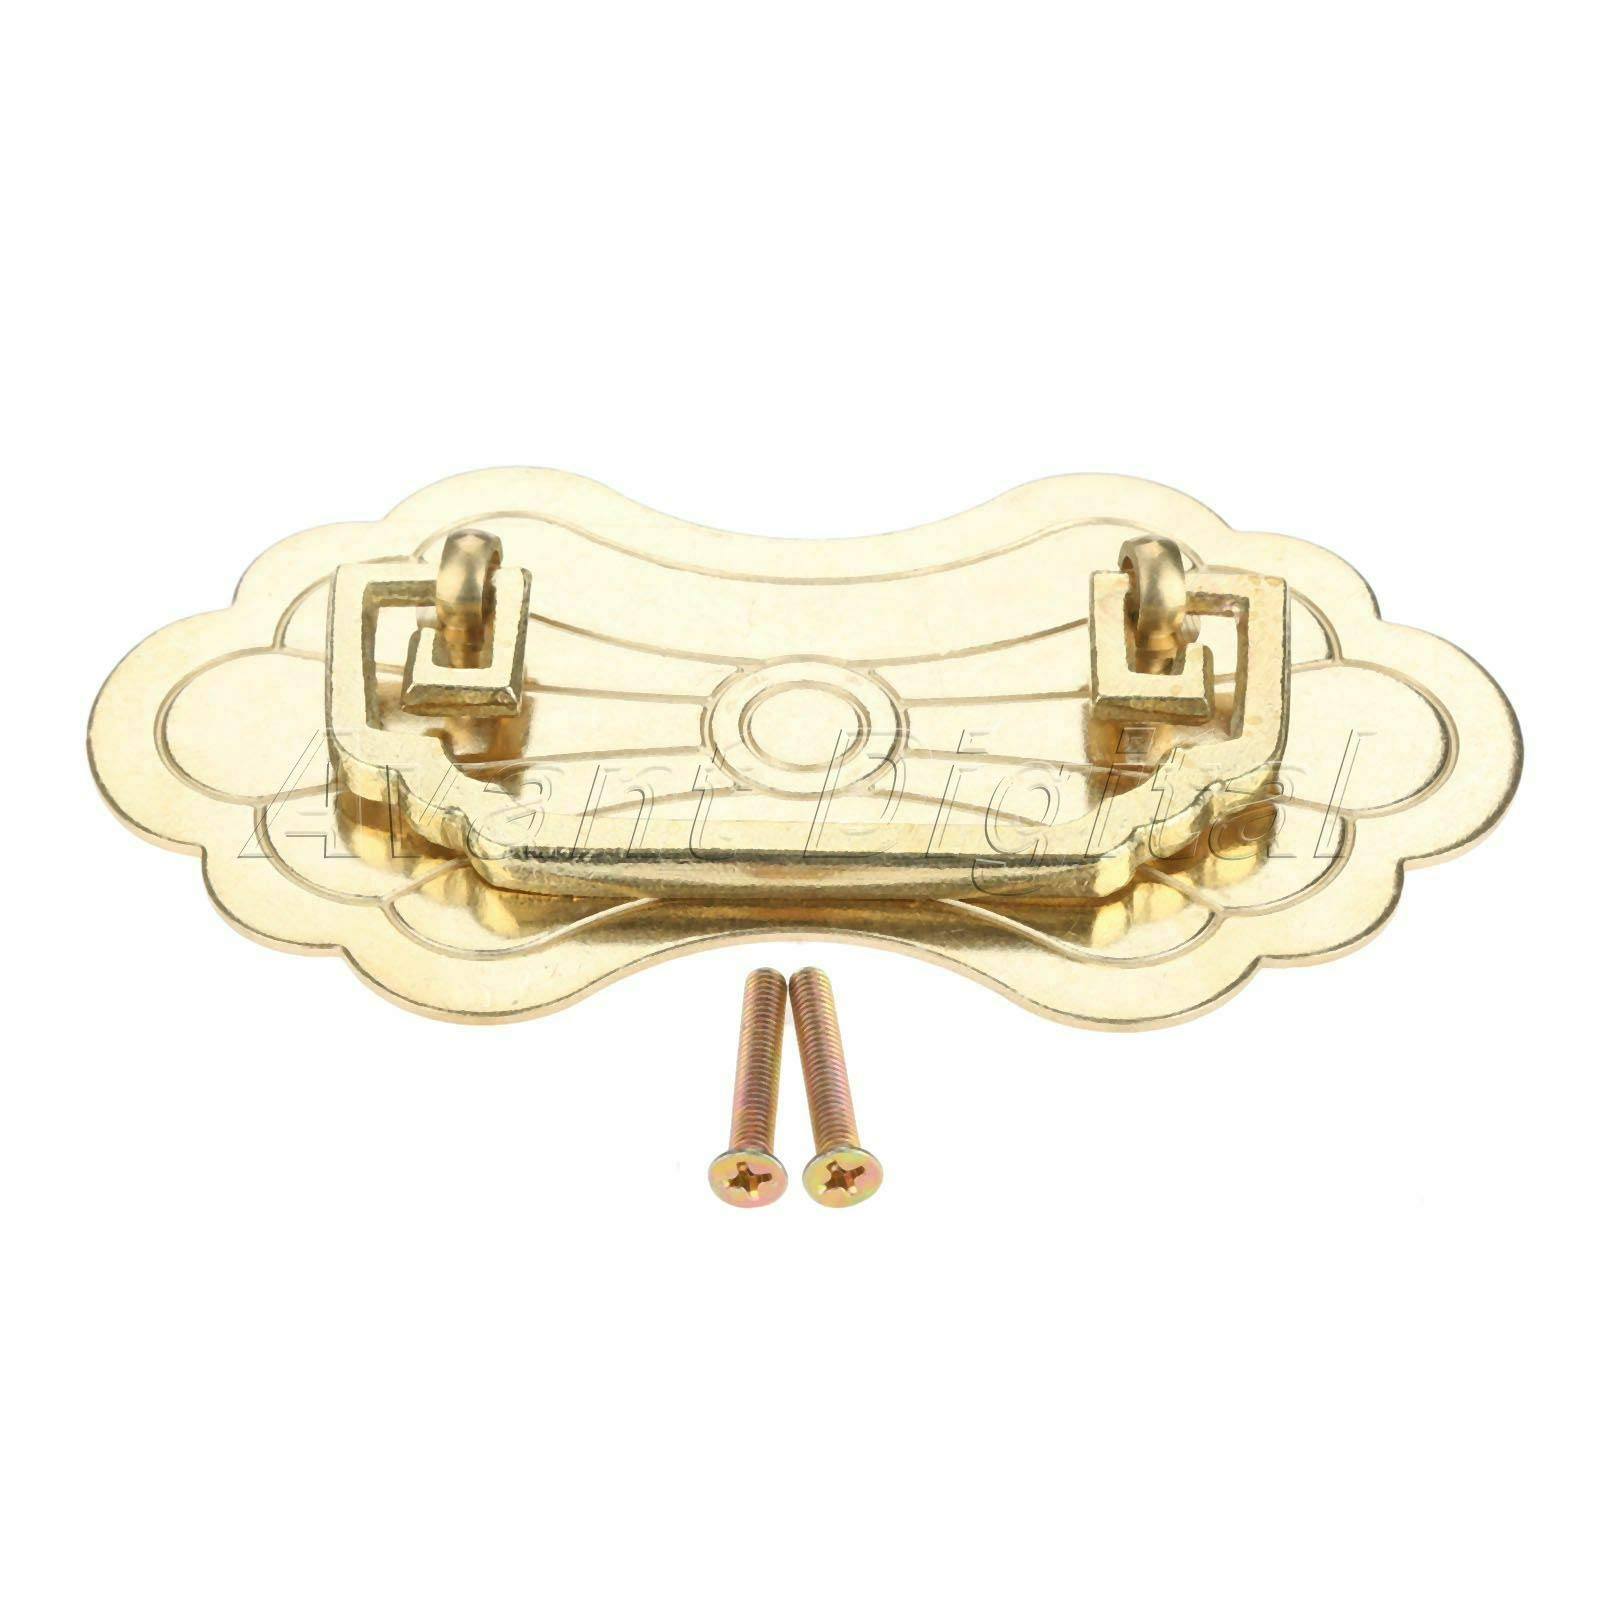 Mercury_Group, Antique Retro Vintage Pulls Knobs, Solid Wine Jewelry Box Pull Handle Cabinet Closet Knob Furniture Brass Hardware - (Color: Brass)